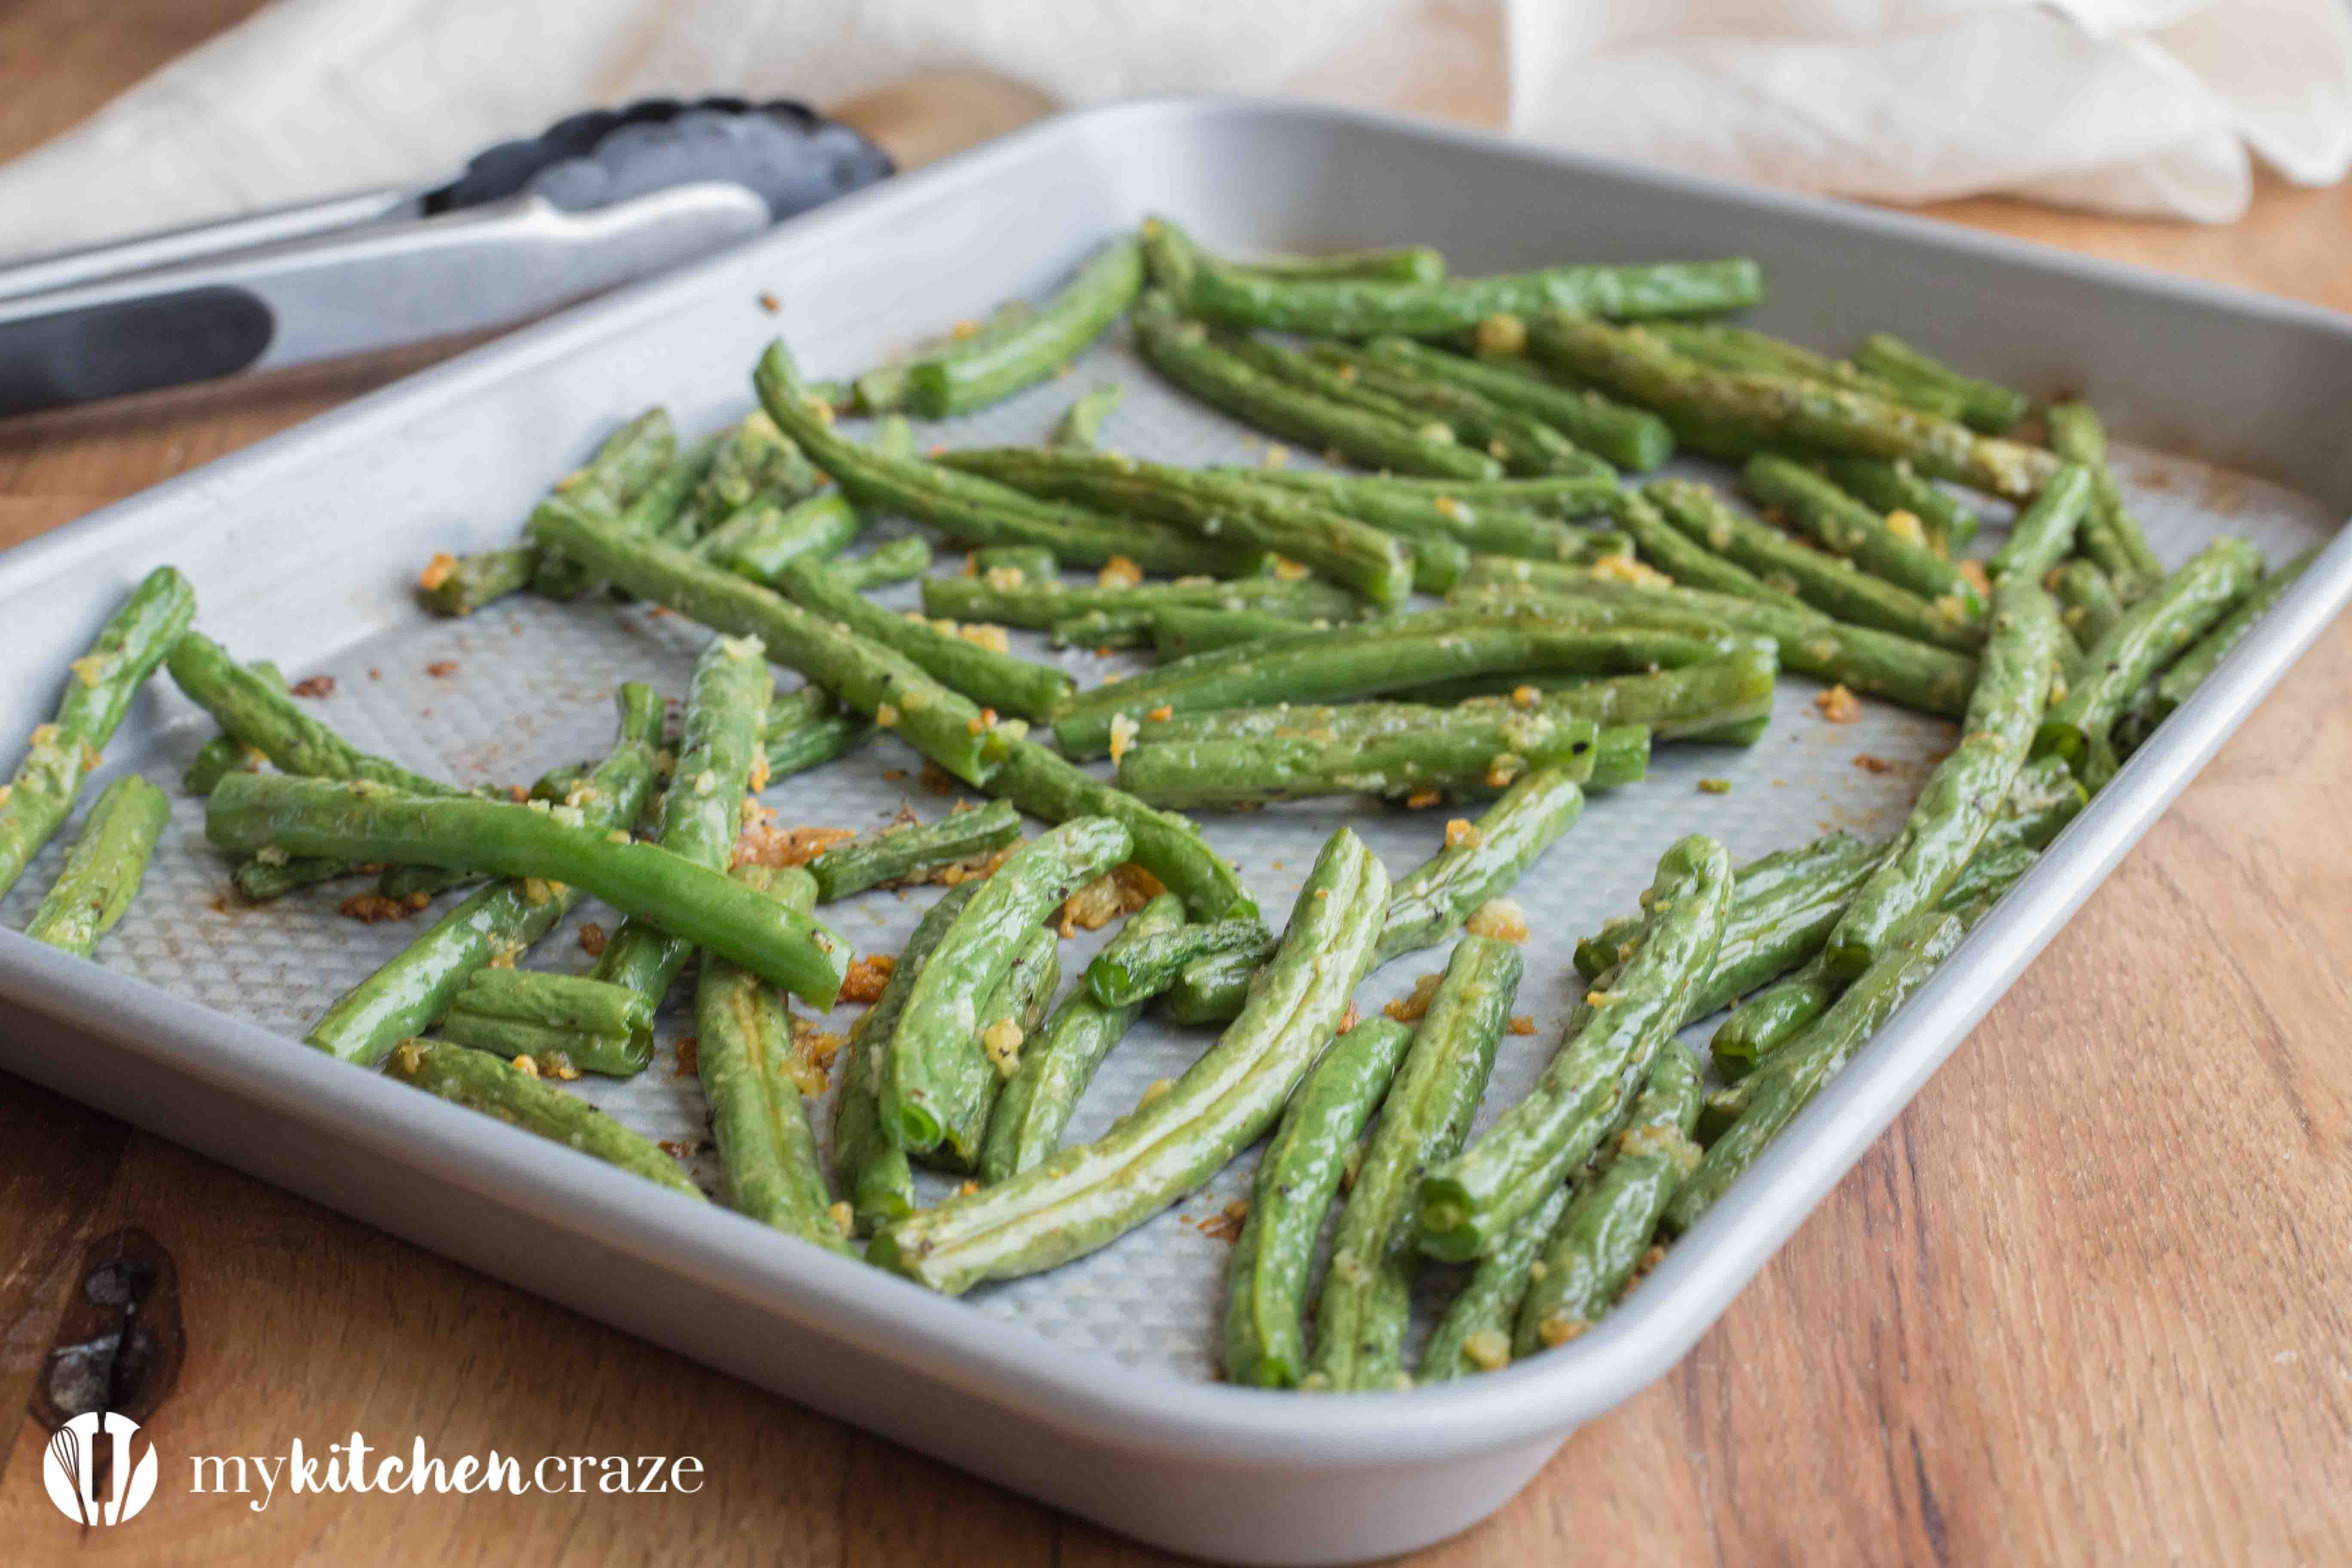 Baked Garlic Green Beans are a simple and delicious side dish that will compliment any main entree. Crunchy green beans and roasted garlic, make this one easy yummy side!